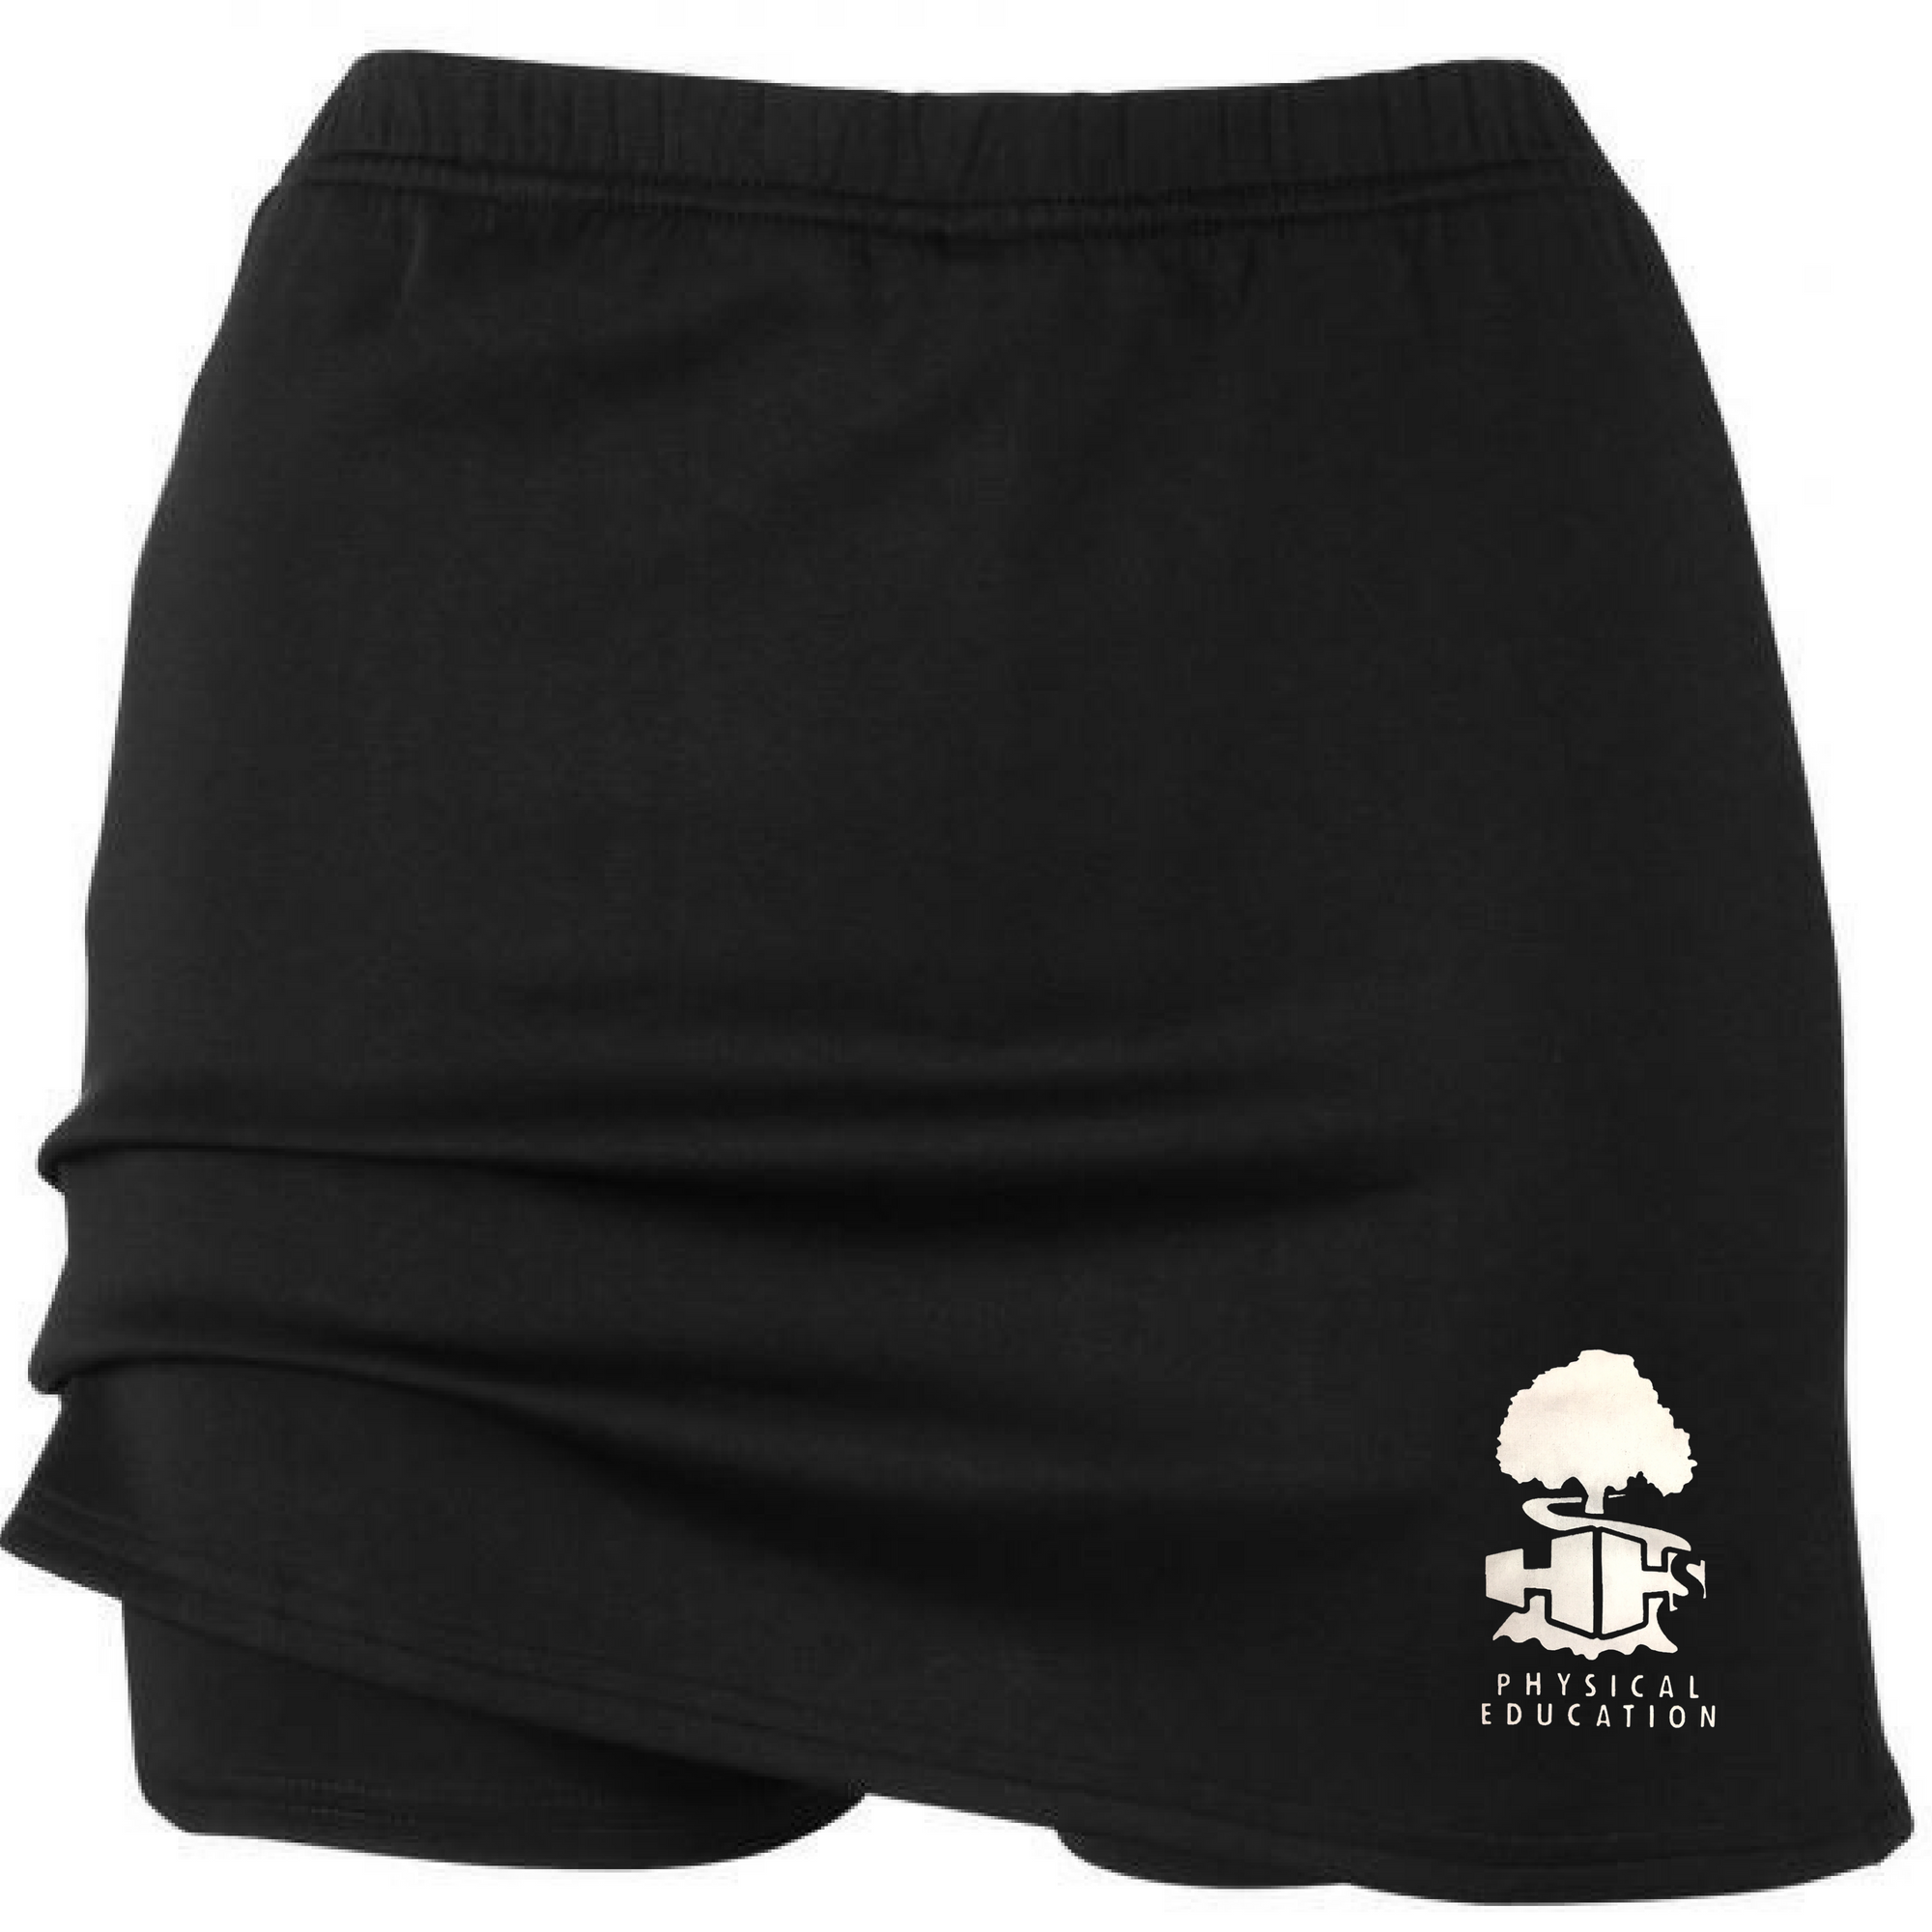 Hawthorn High School *SPORTS* Skort Skirt and Short Combi